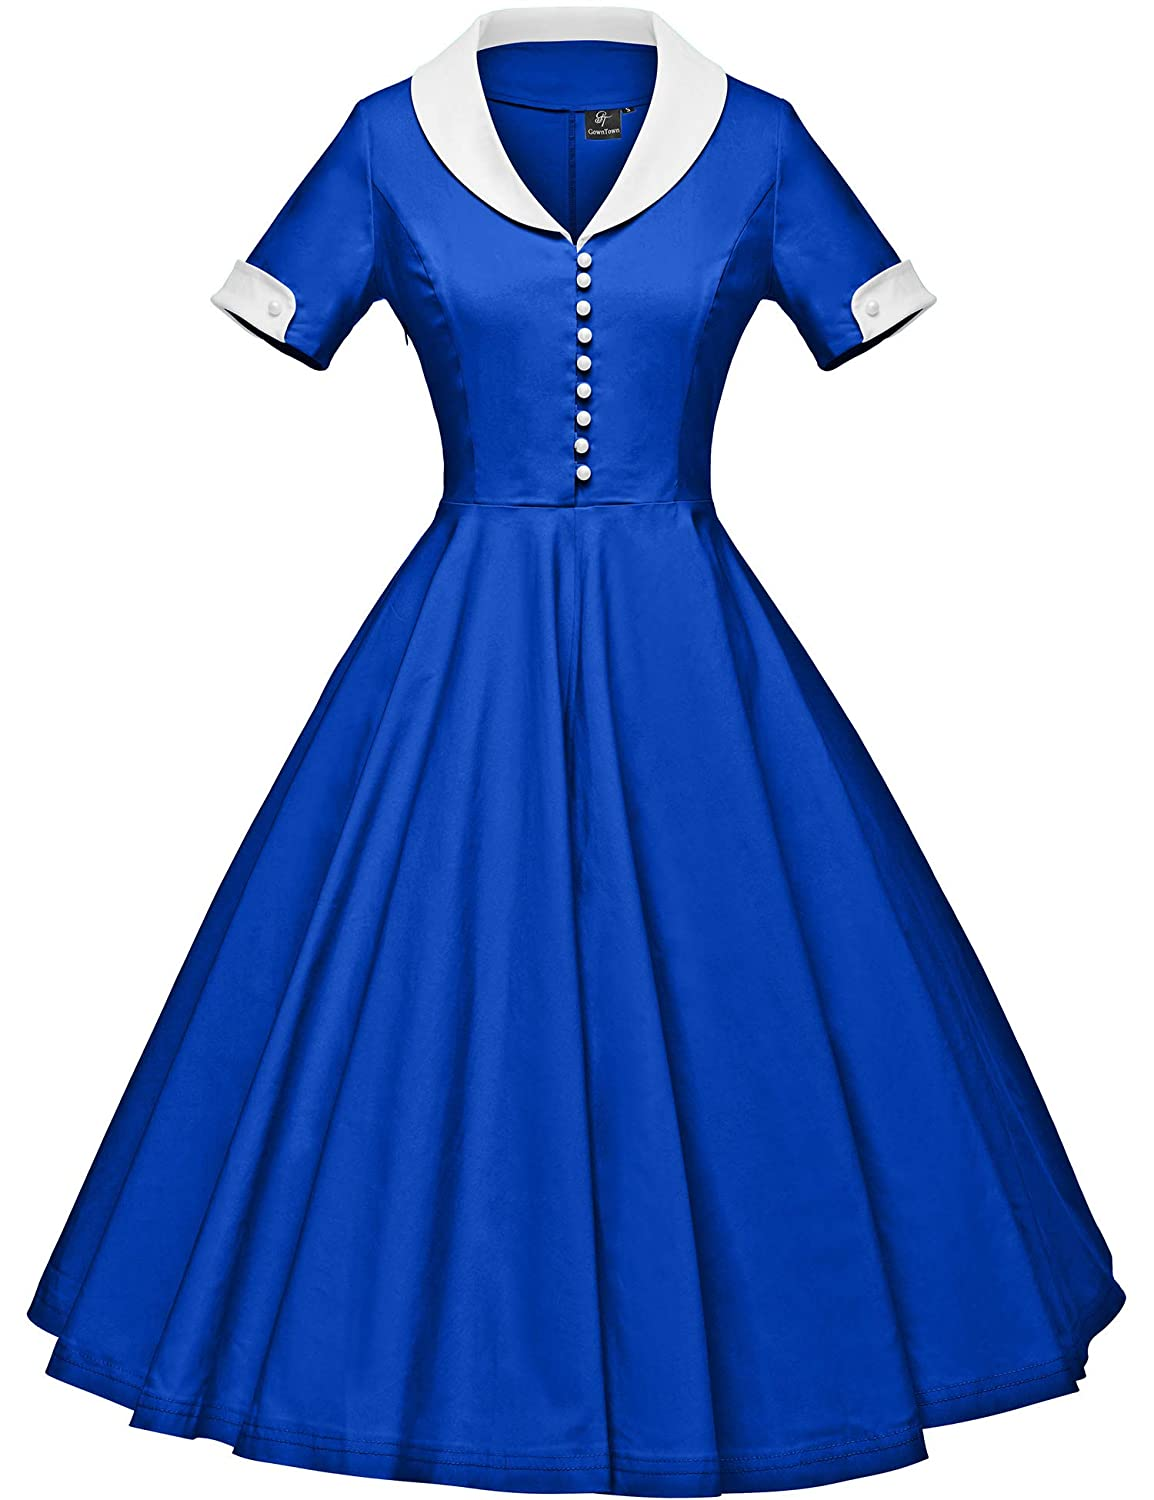 Vintage Shirtwaist Dress History GownTown Womens 1950s Cape Collar Vintage Swing Stretchy Dresses $35.99 AT vintagedancer.com